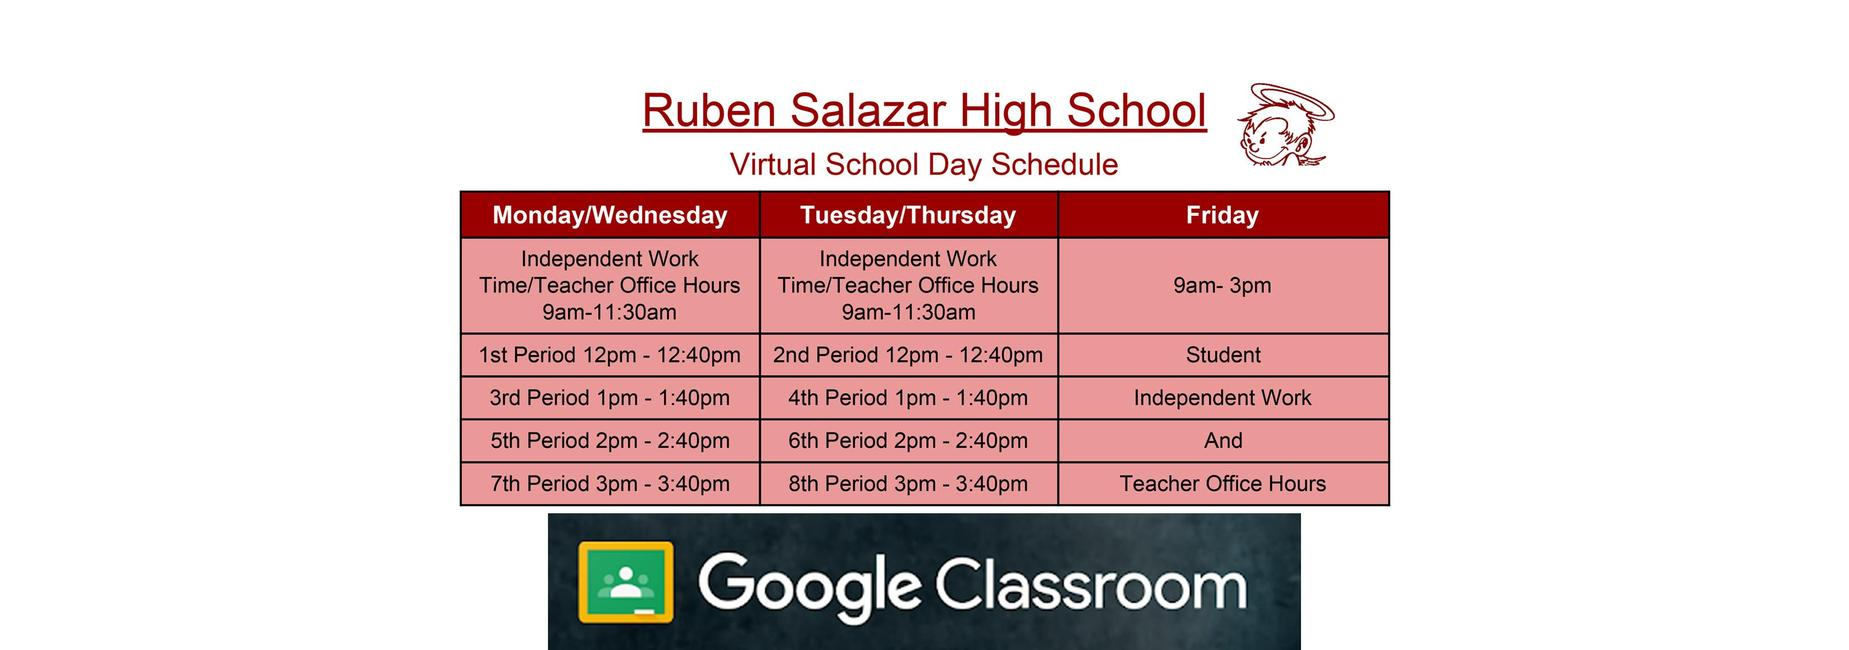 Virtual School Day Schedule